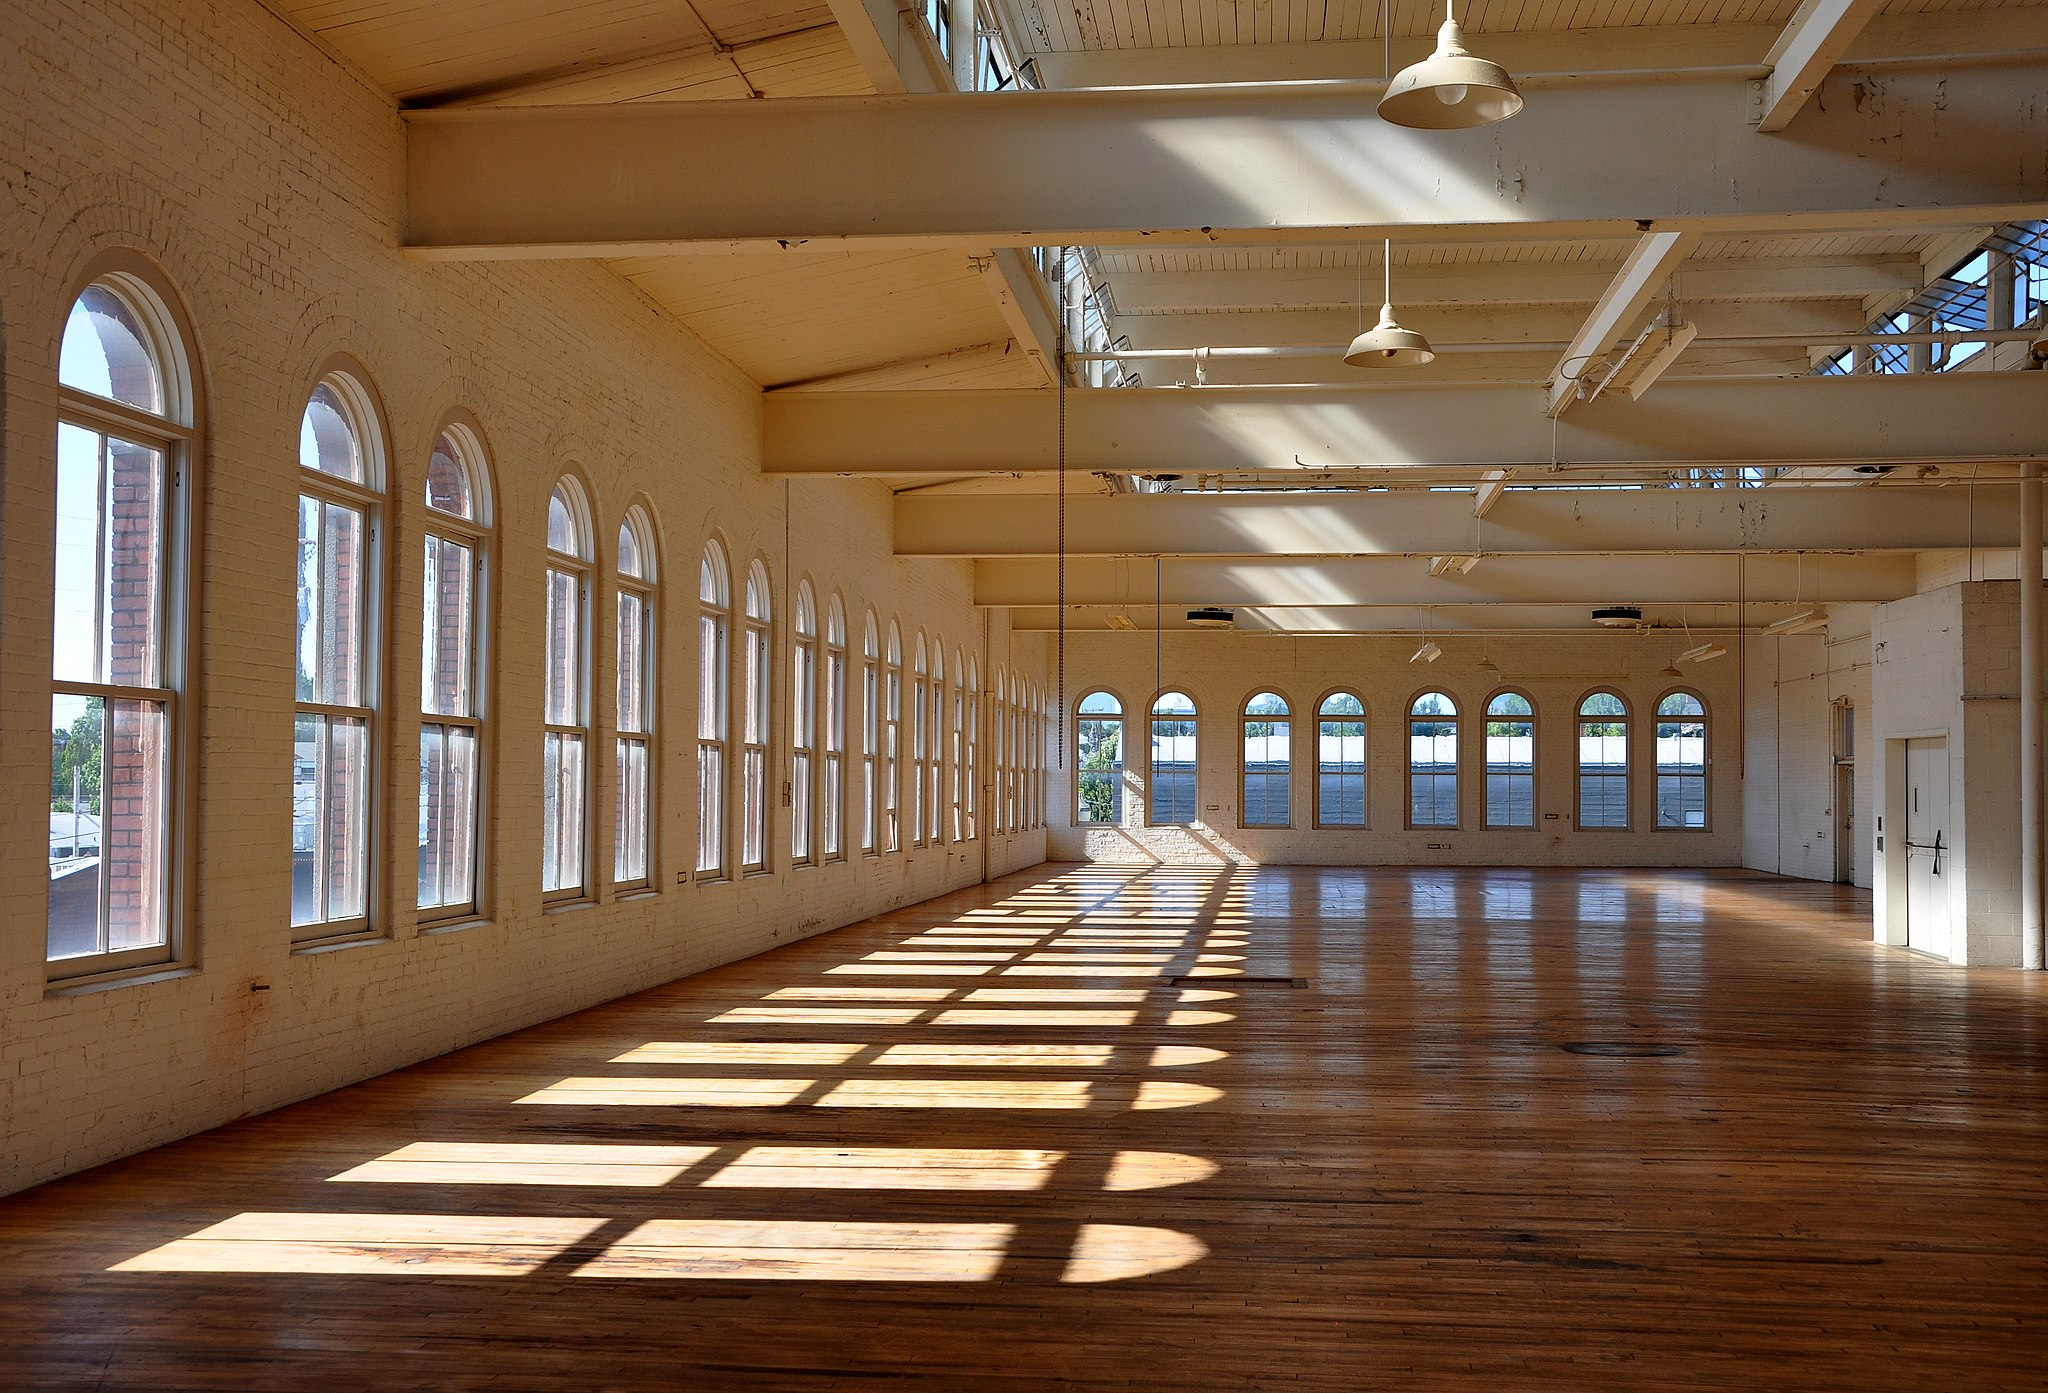 West side of the second floor of the Yale Union Laundry Building in Portland, Oregon, United States. The building, which housed a large commercial laundry for much of the first half of the 20th century, is listed on the National Register of Historic Places. Photo by: Finetooth, on Wikimedia Commons